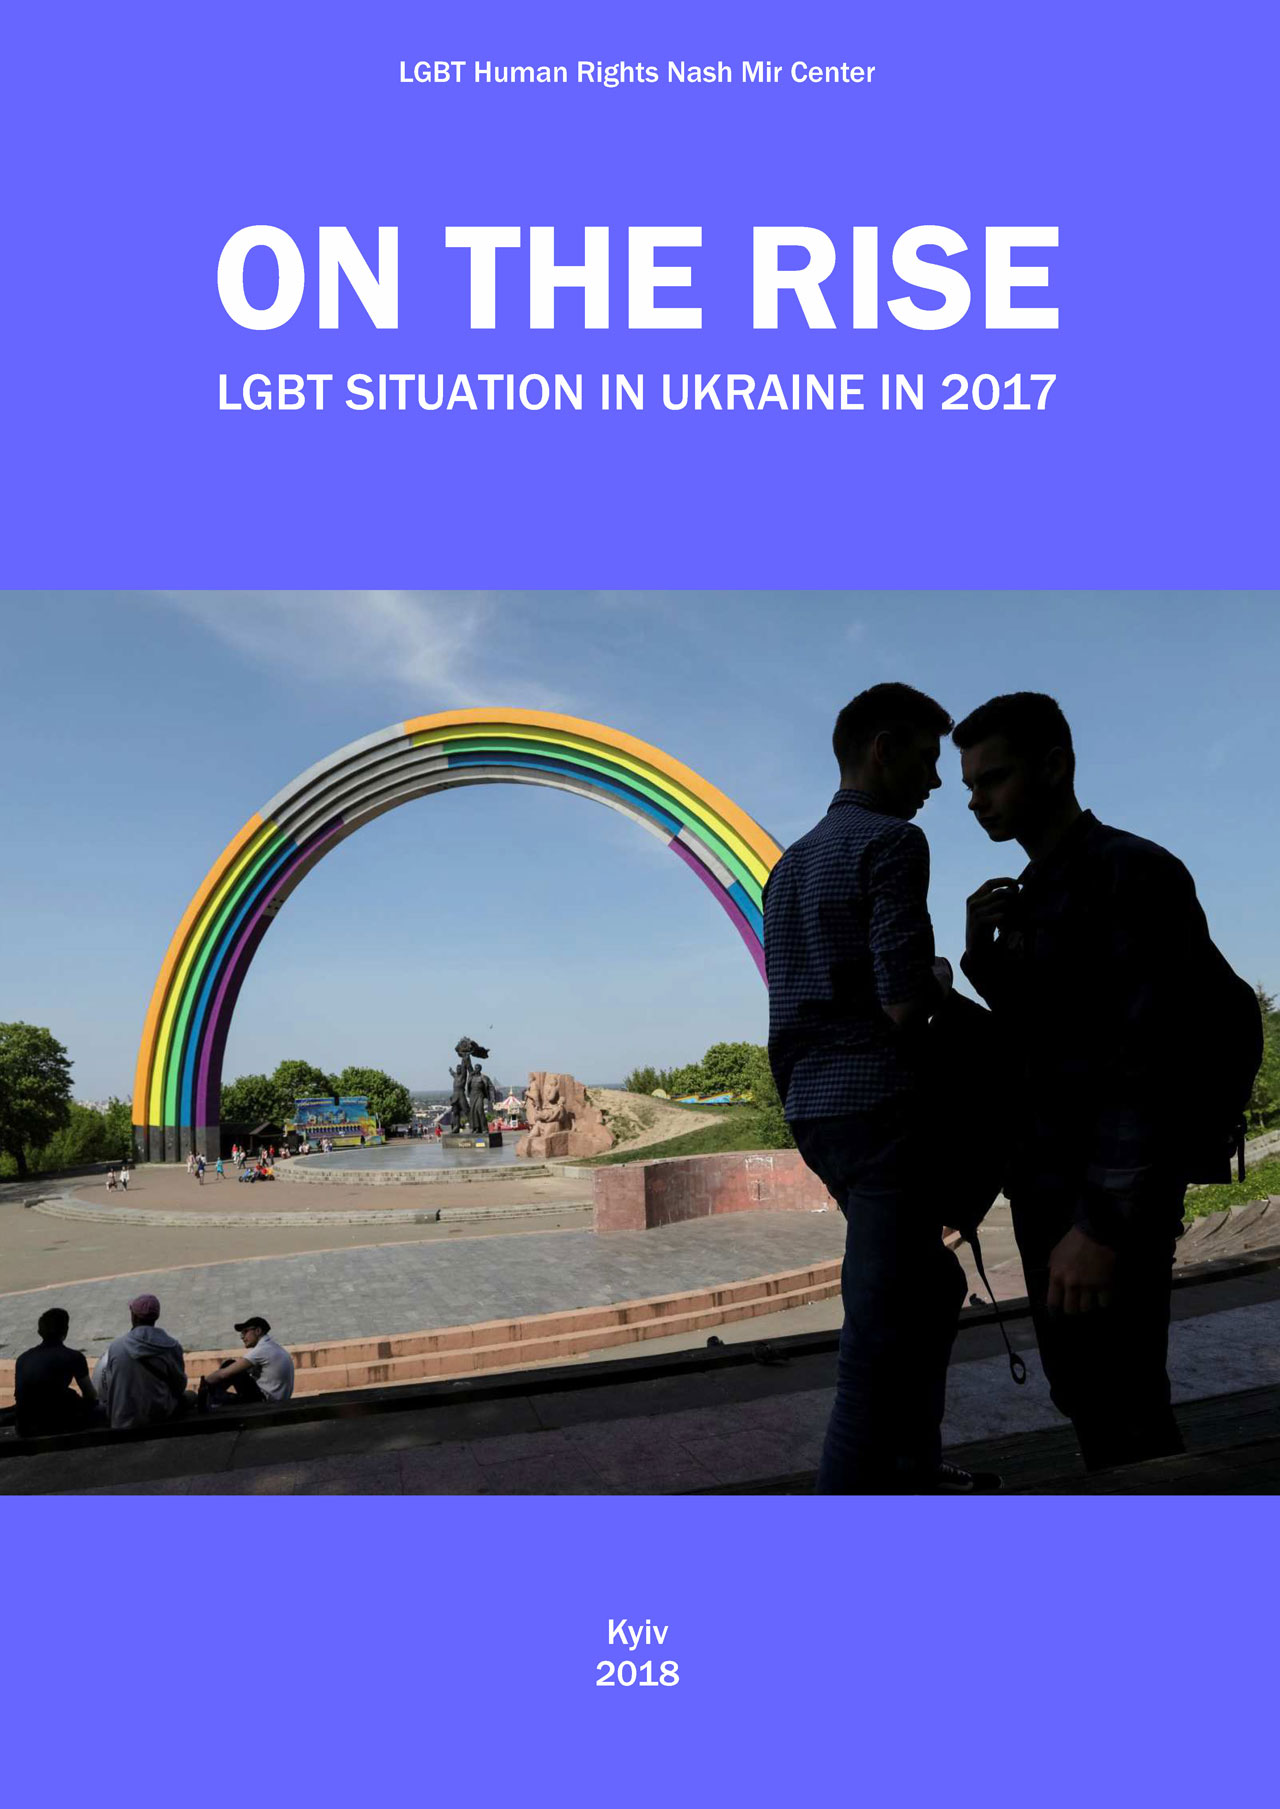 On the Rise. LGBT situation in Ukraine in 2017